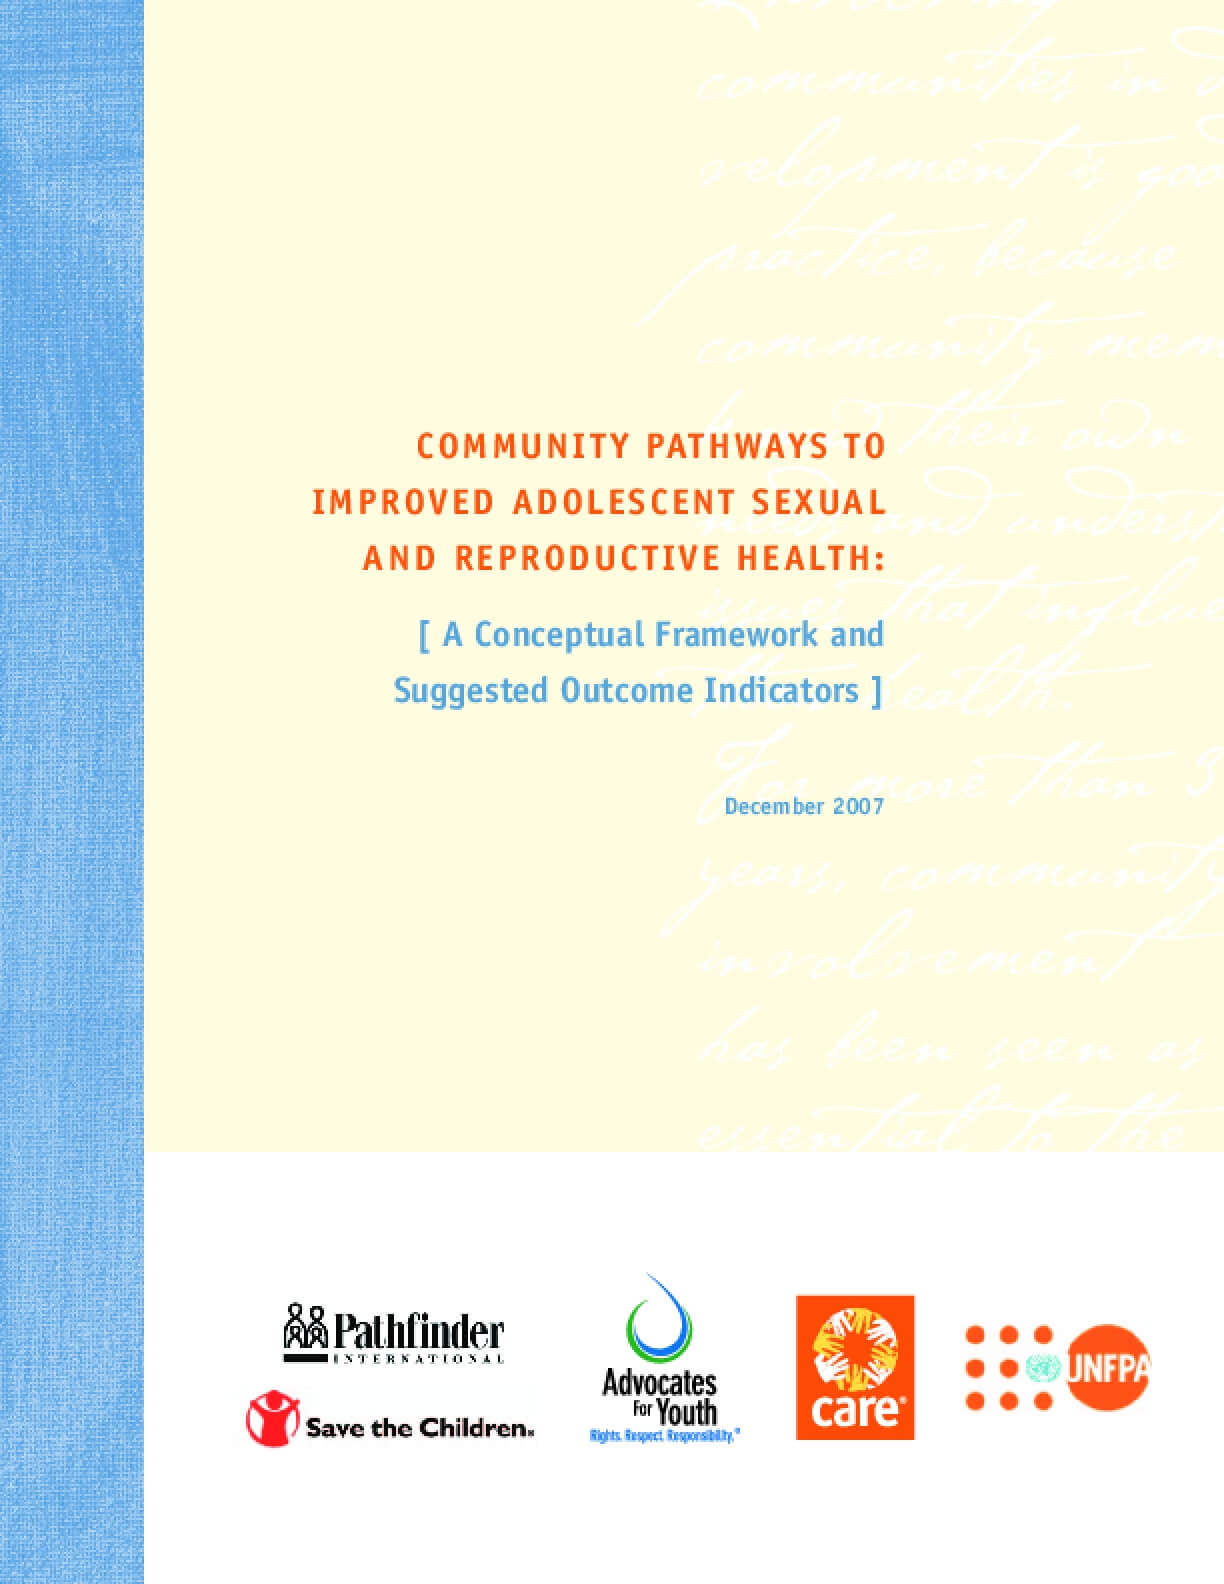 Community Pathways to Improved Adolescent Sexual and Reproductive Health